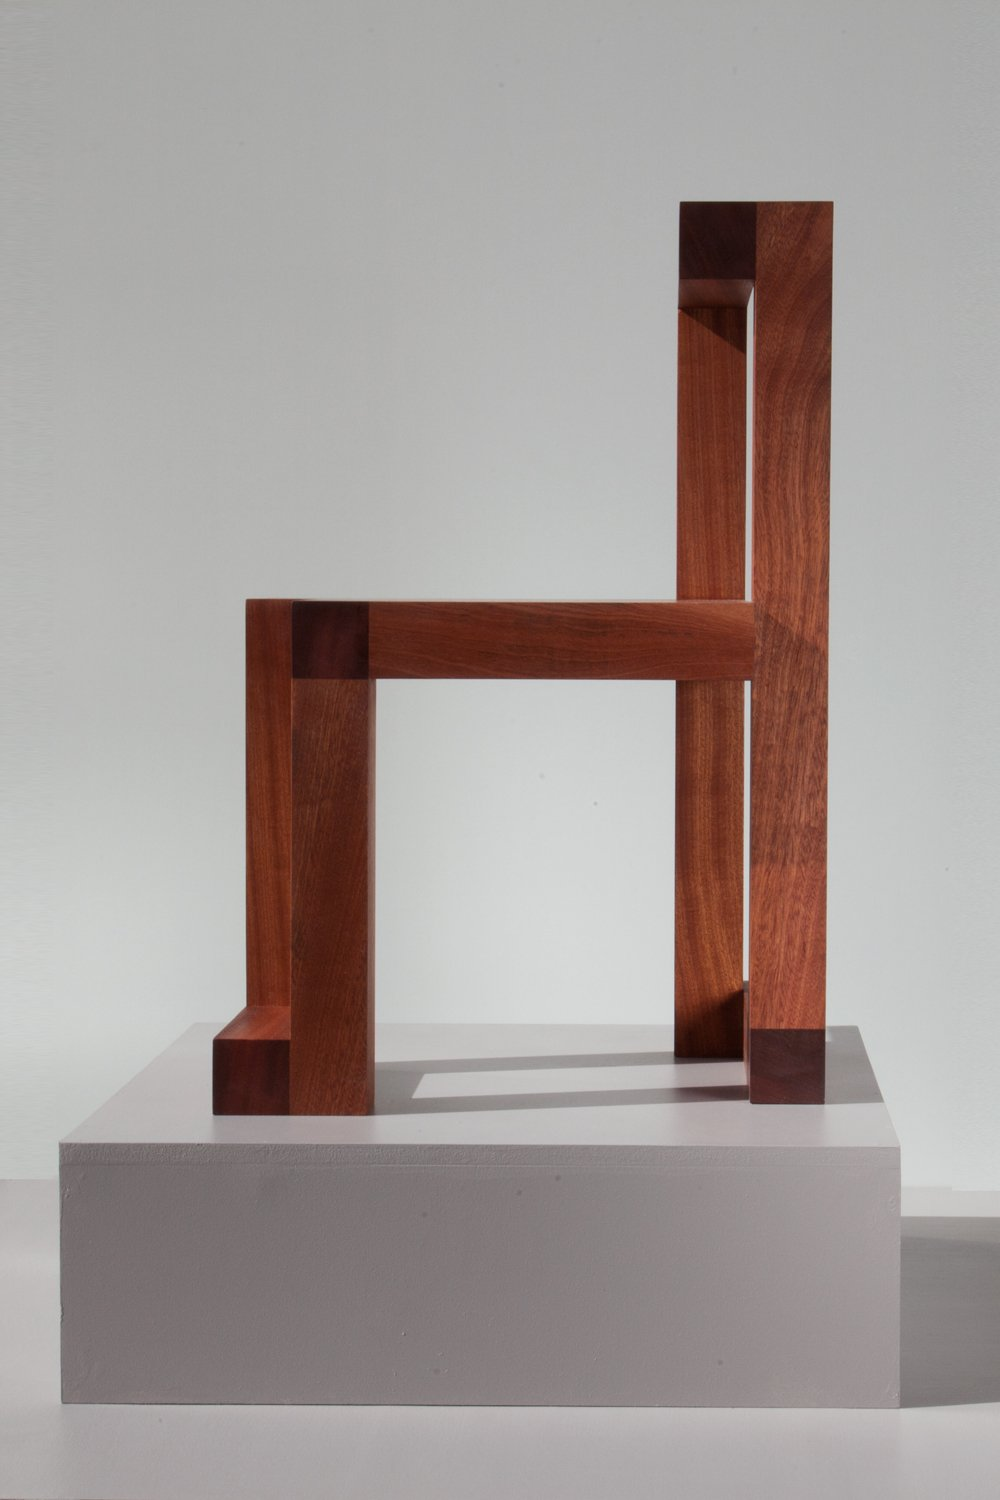 The Sapele Brut By Richard Lowry